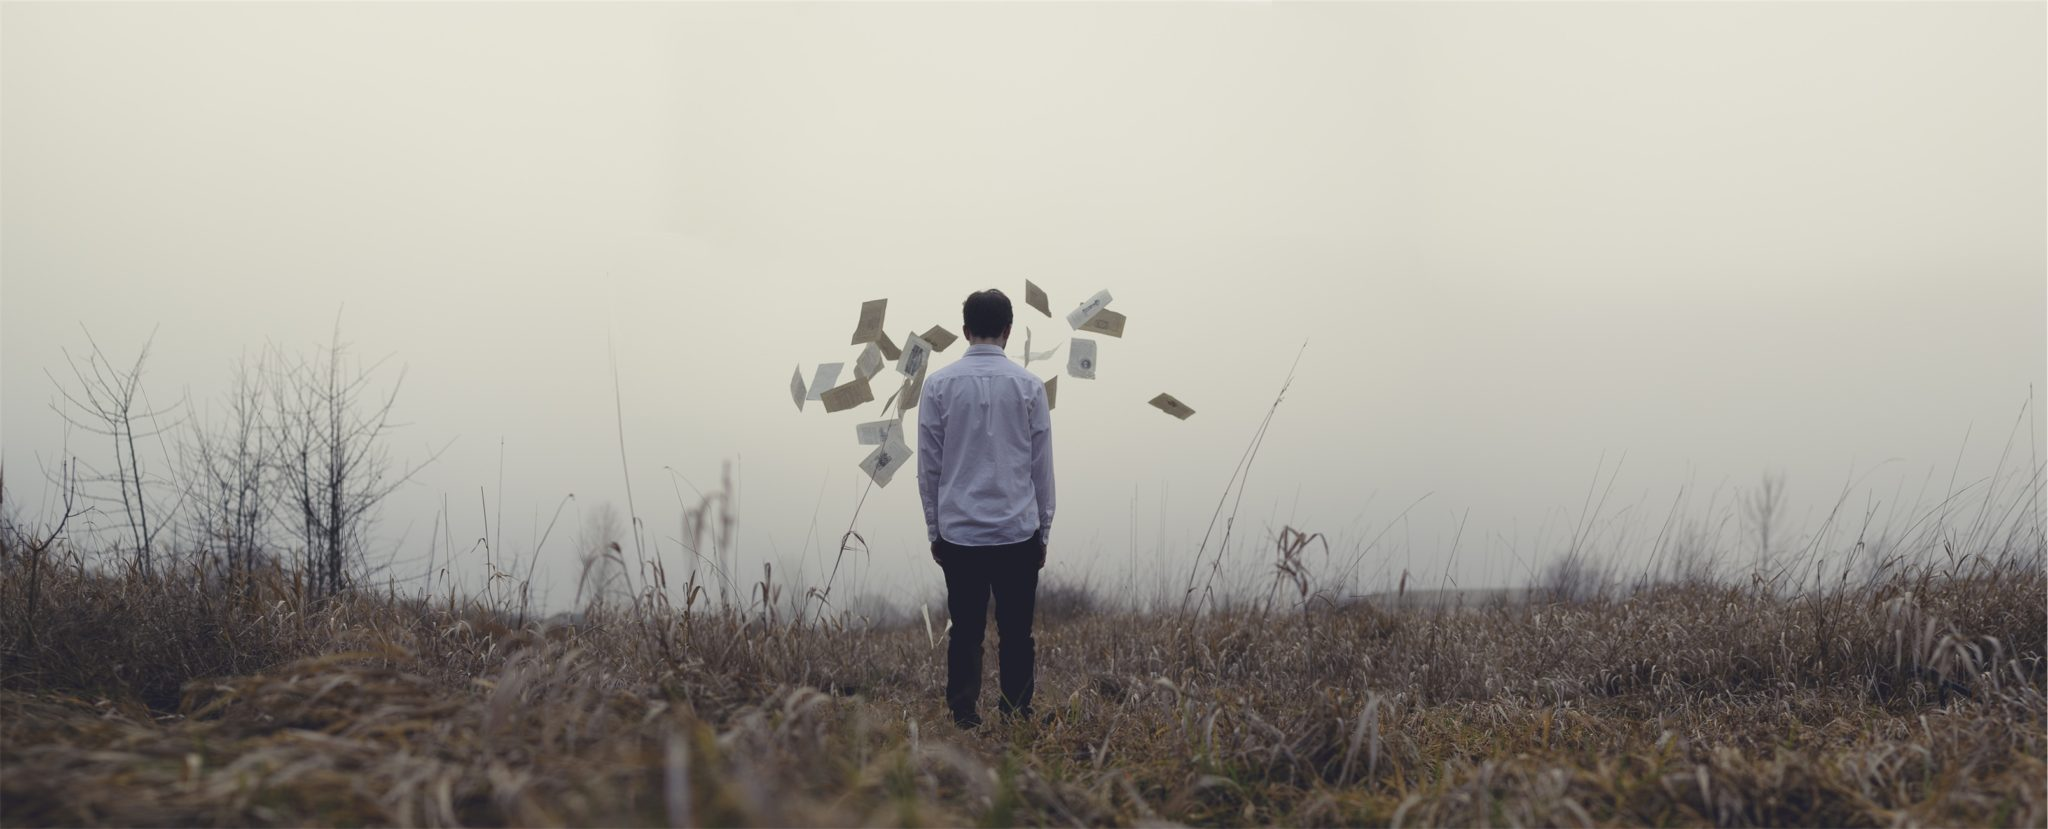 Guy throws papers in a field by Jake Melara from stocksnap.io